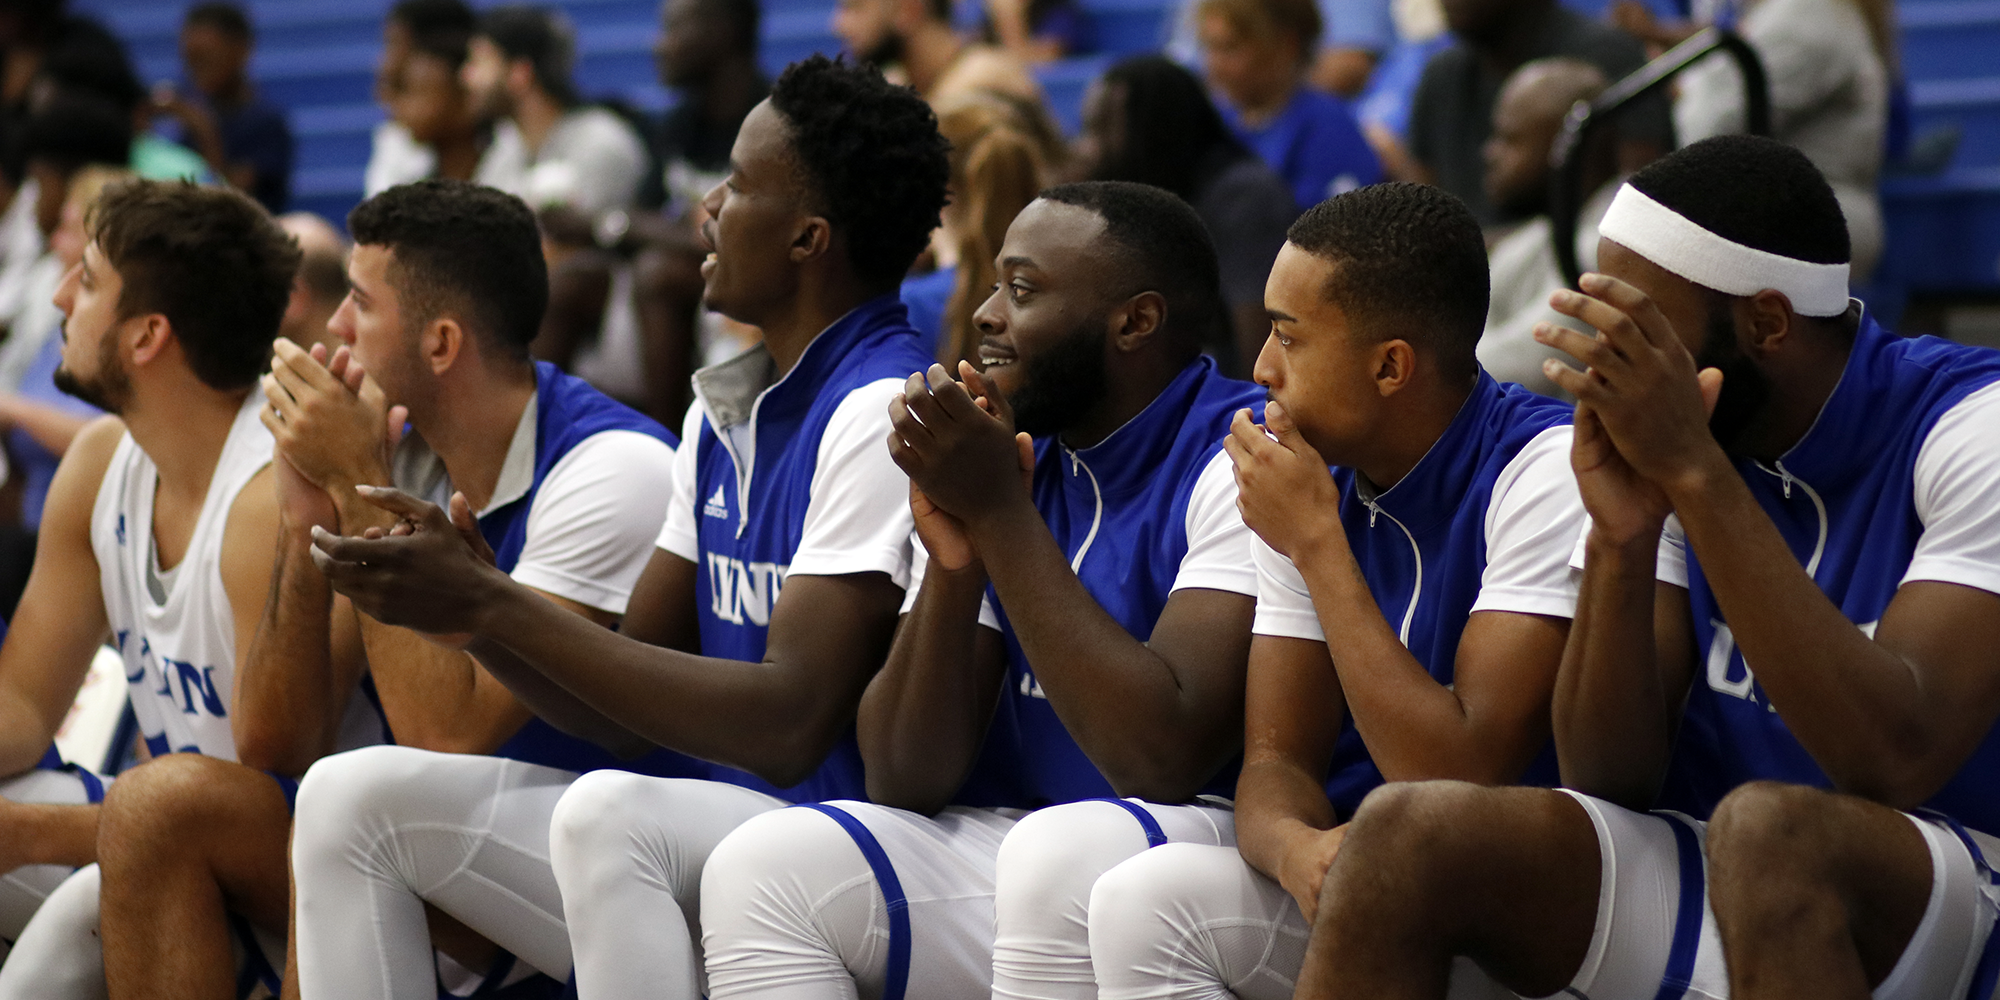 Men's Basketball Inches Back up National Rankings